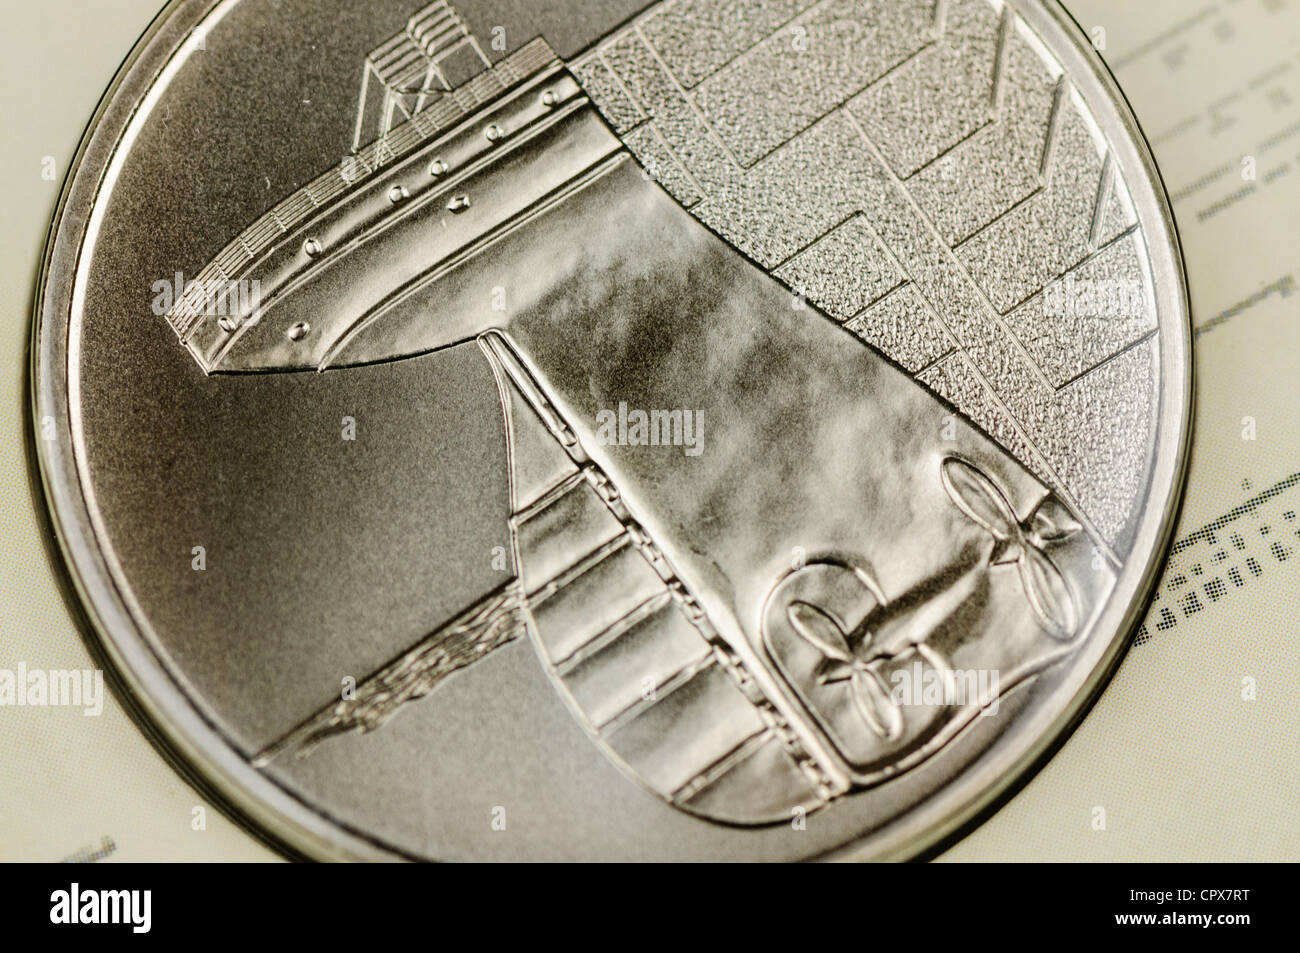 Titanic memorial coin - Stock Image